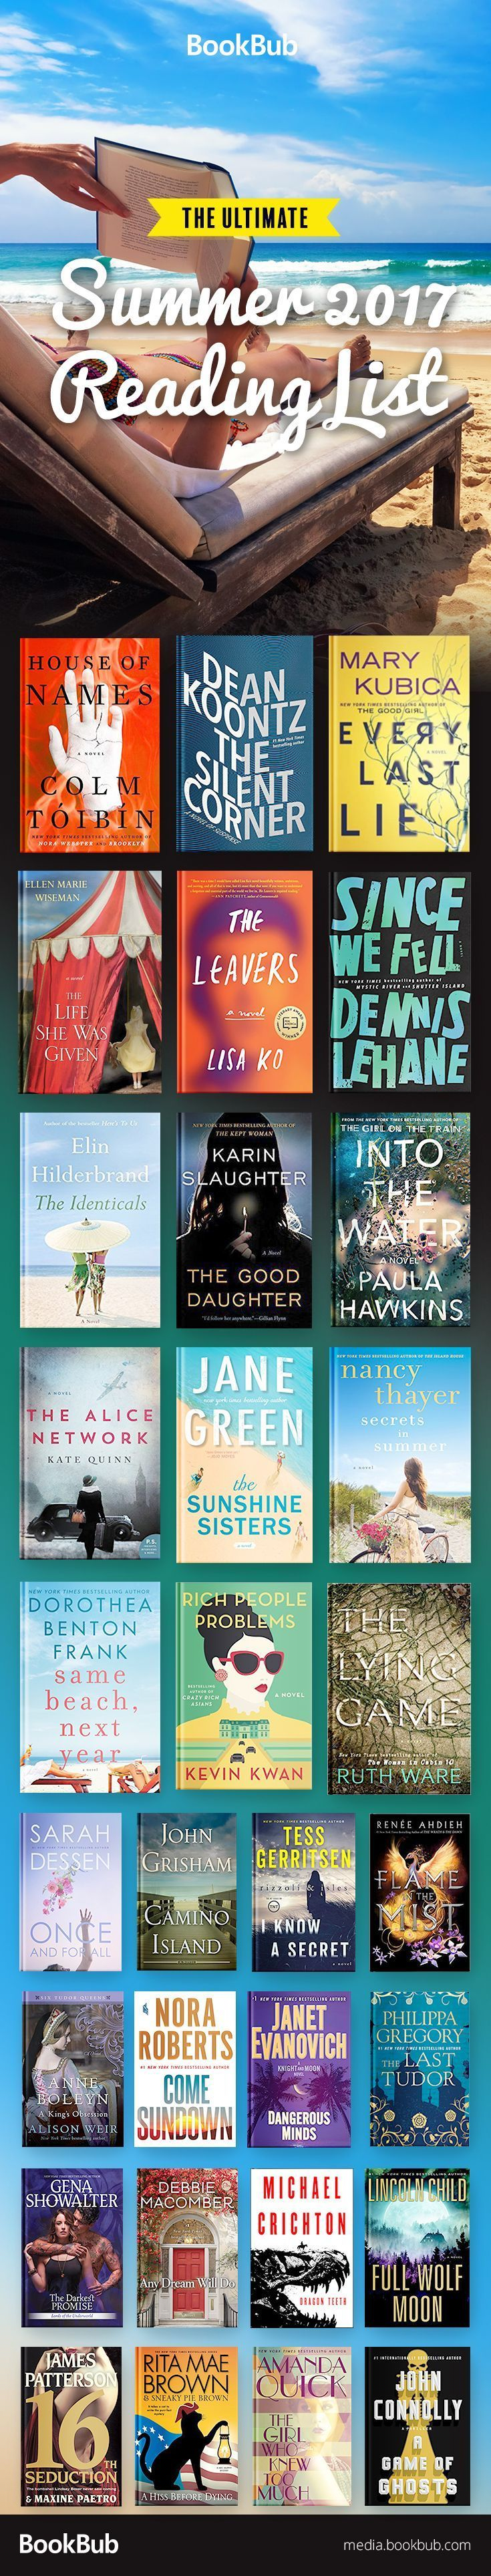 Don't Miss These Great Beach Reads Including Great Books For Summer 2017  And